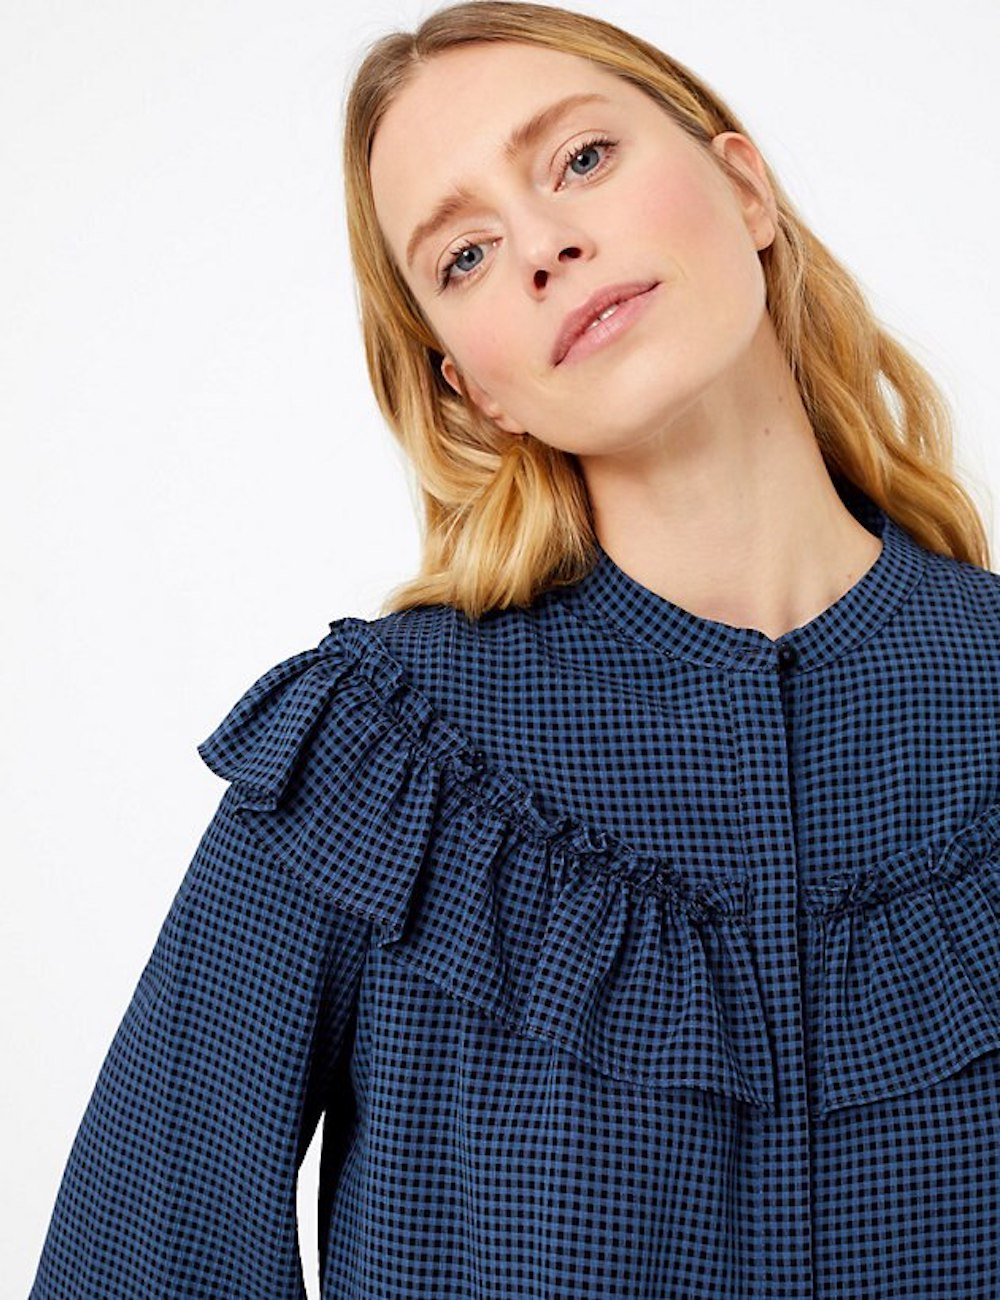 Blue and black check M&S ruffle blouse